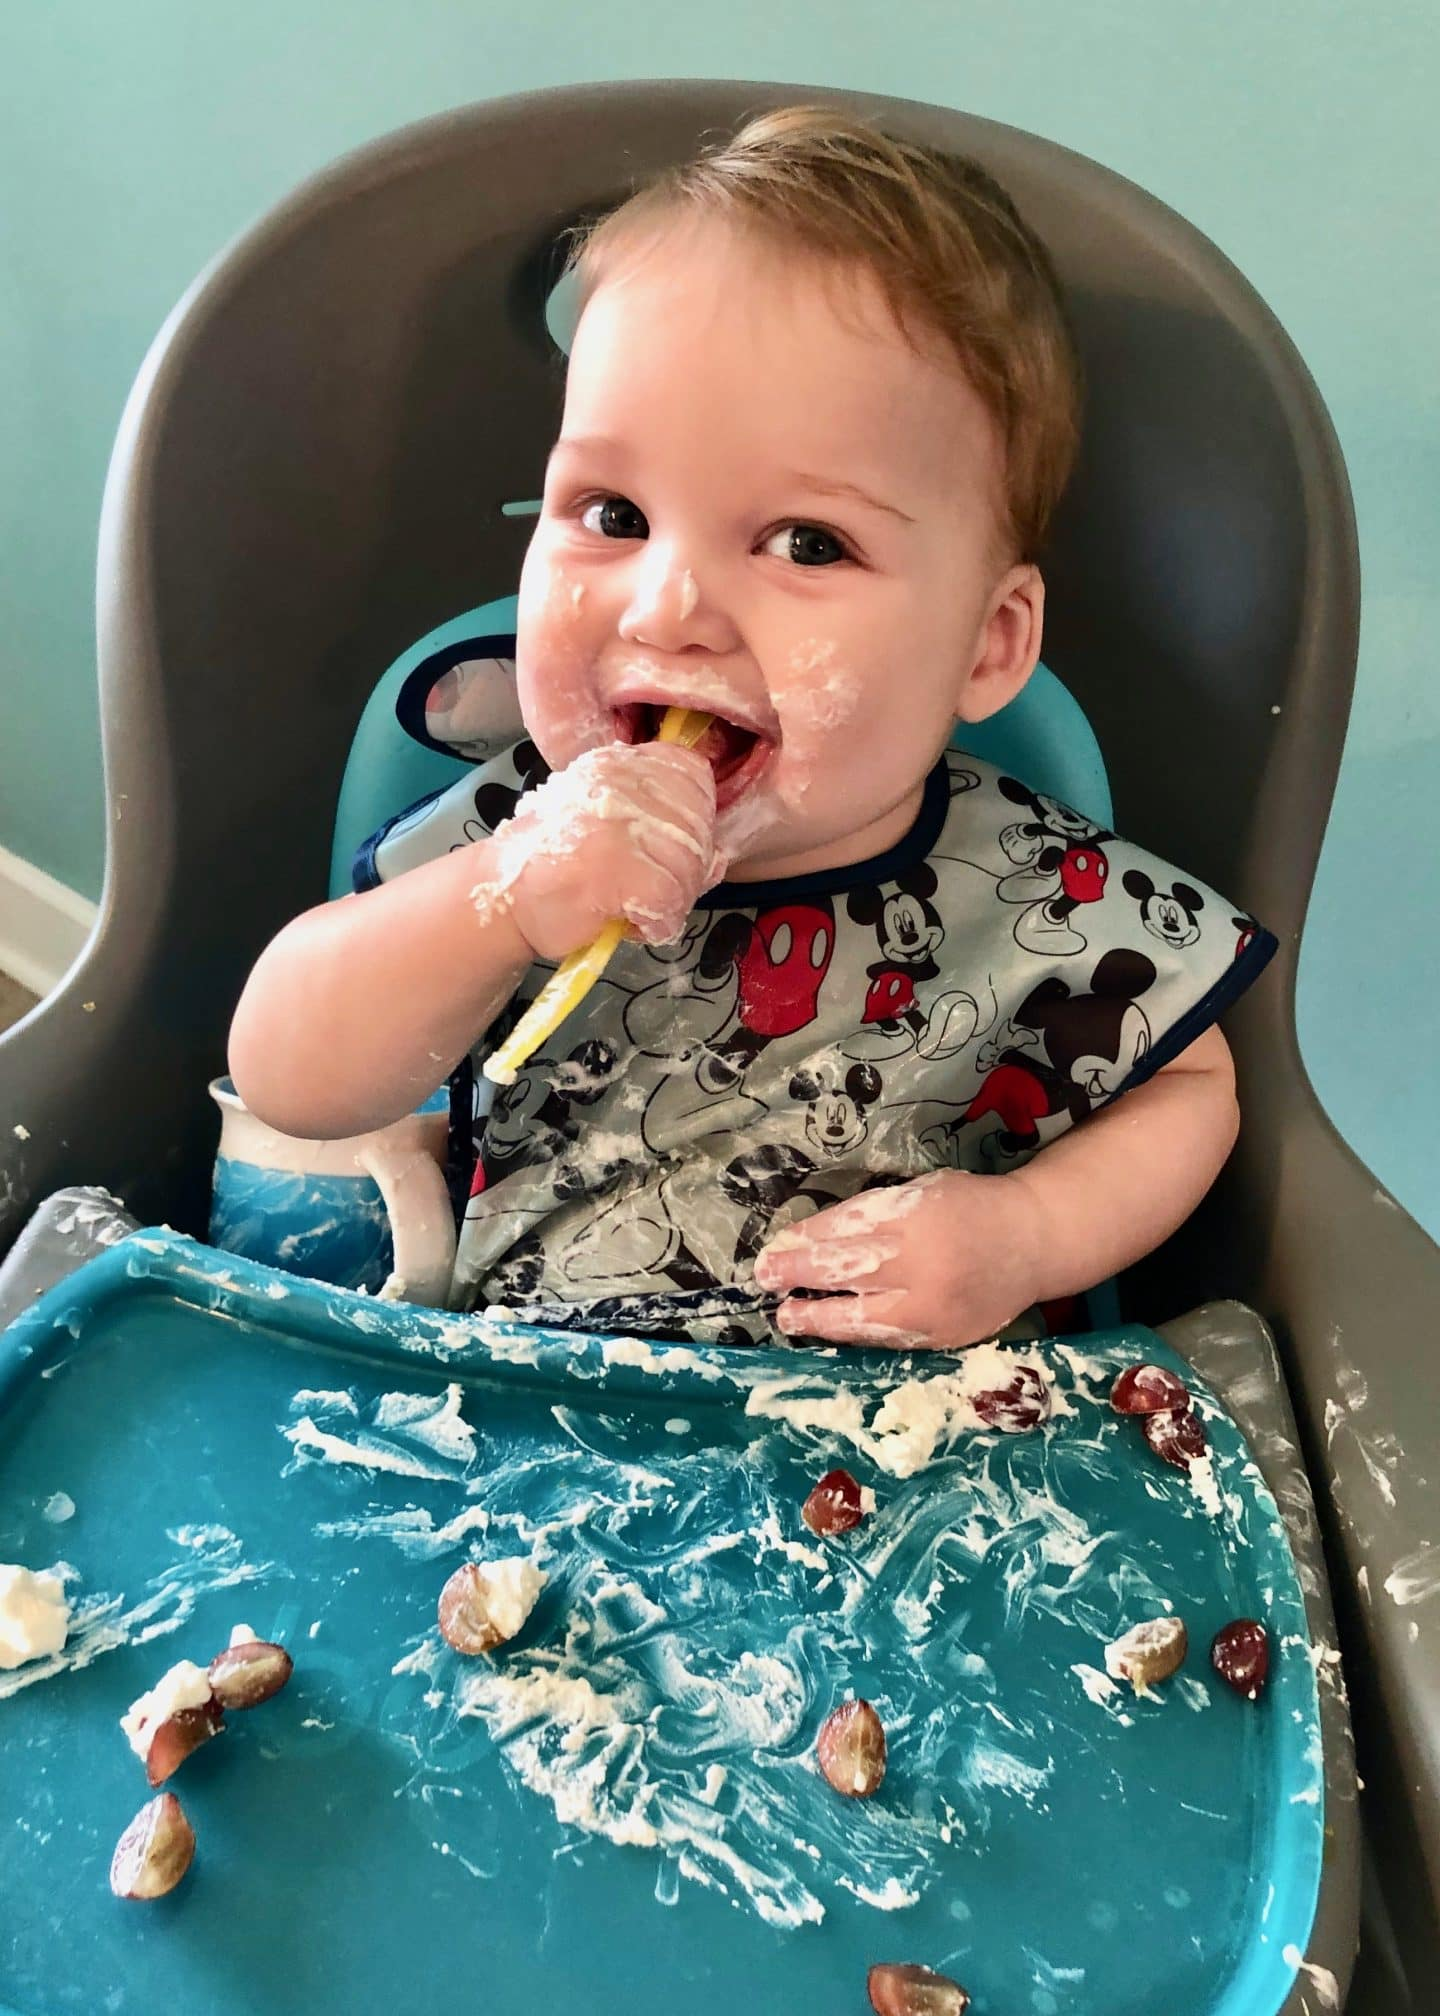 messy baby enjoying food using blw method